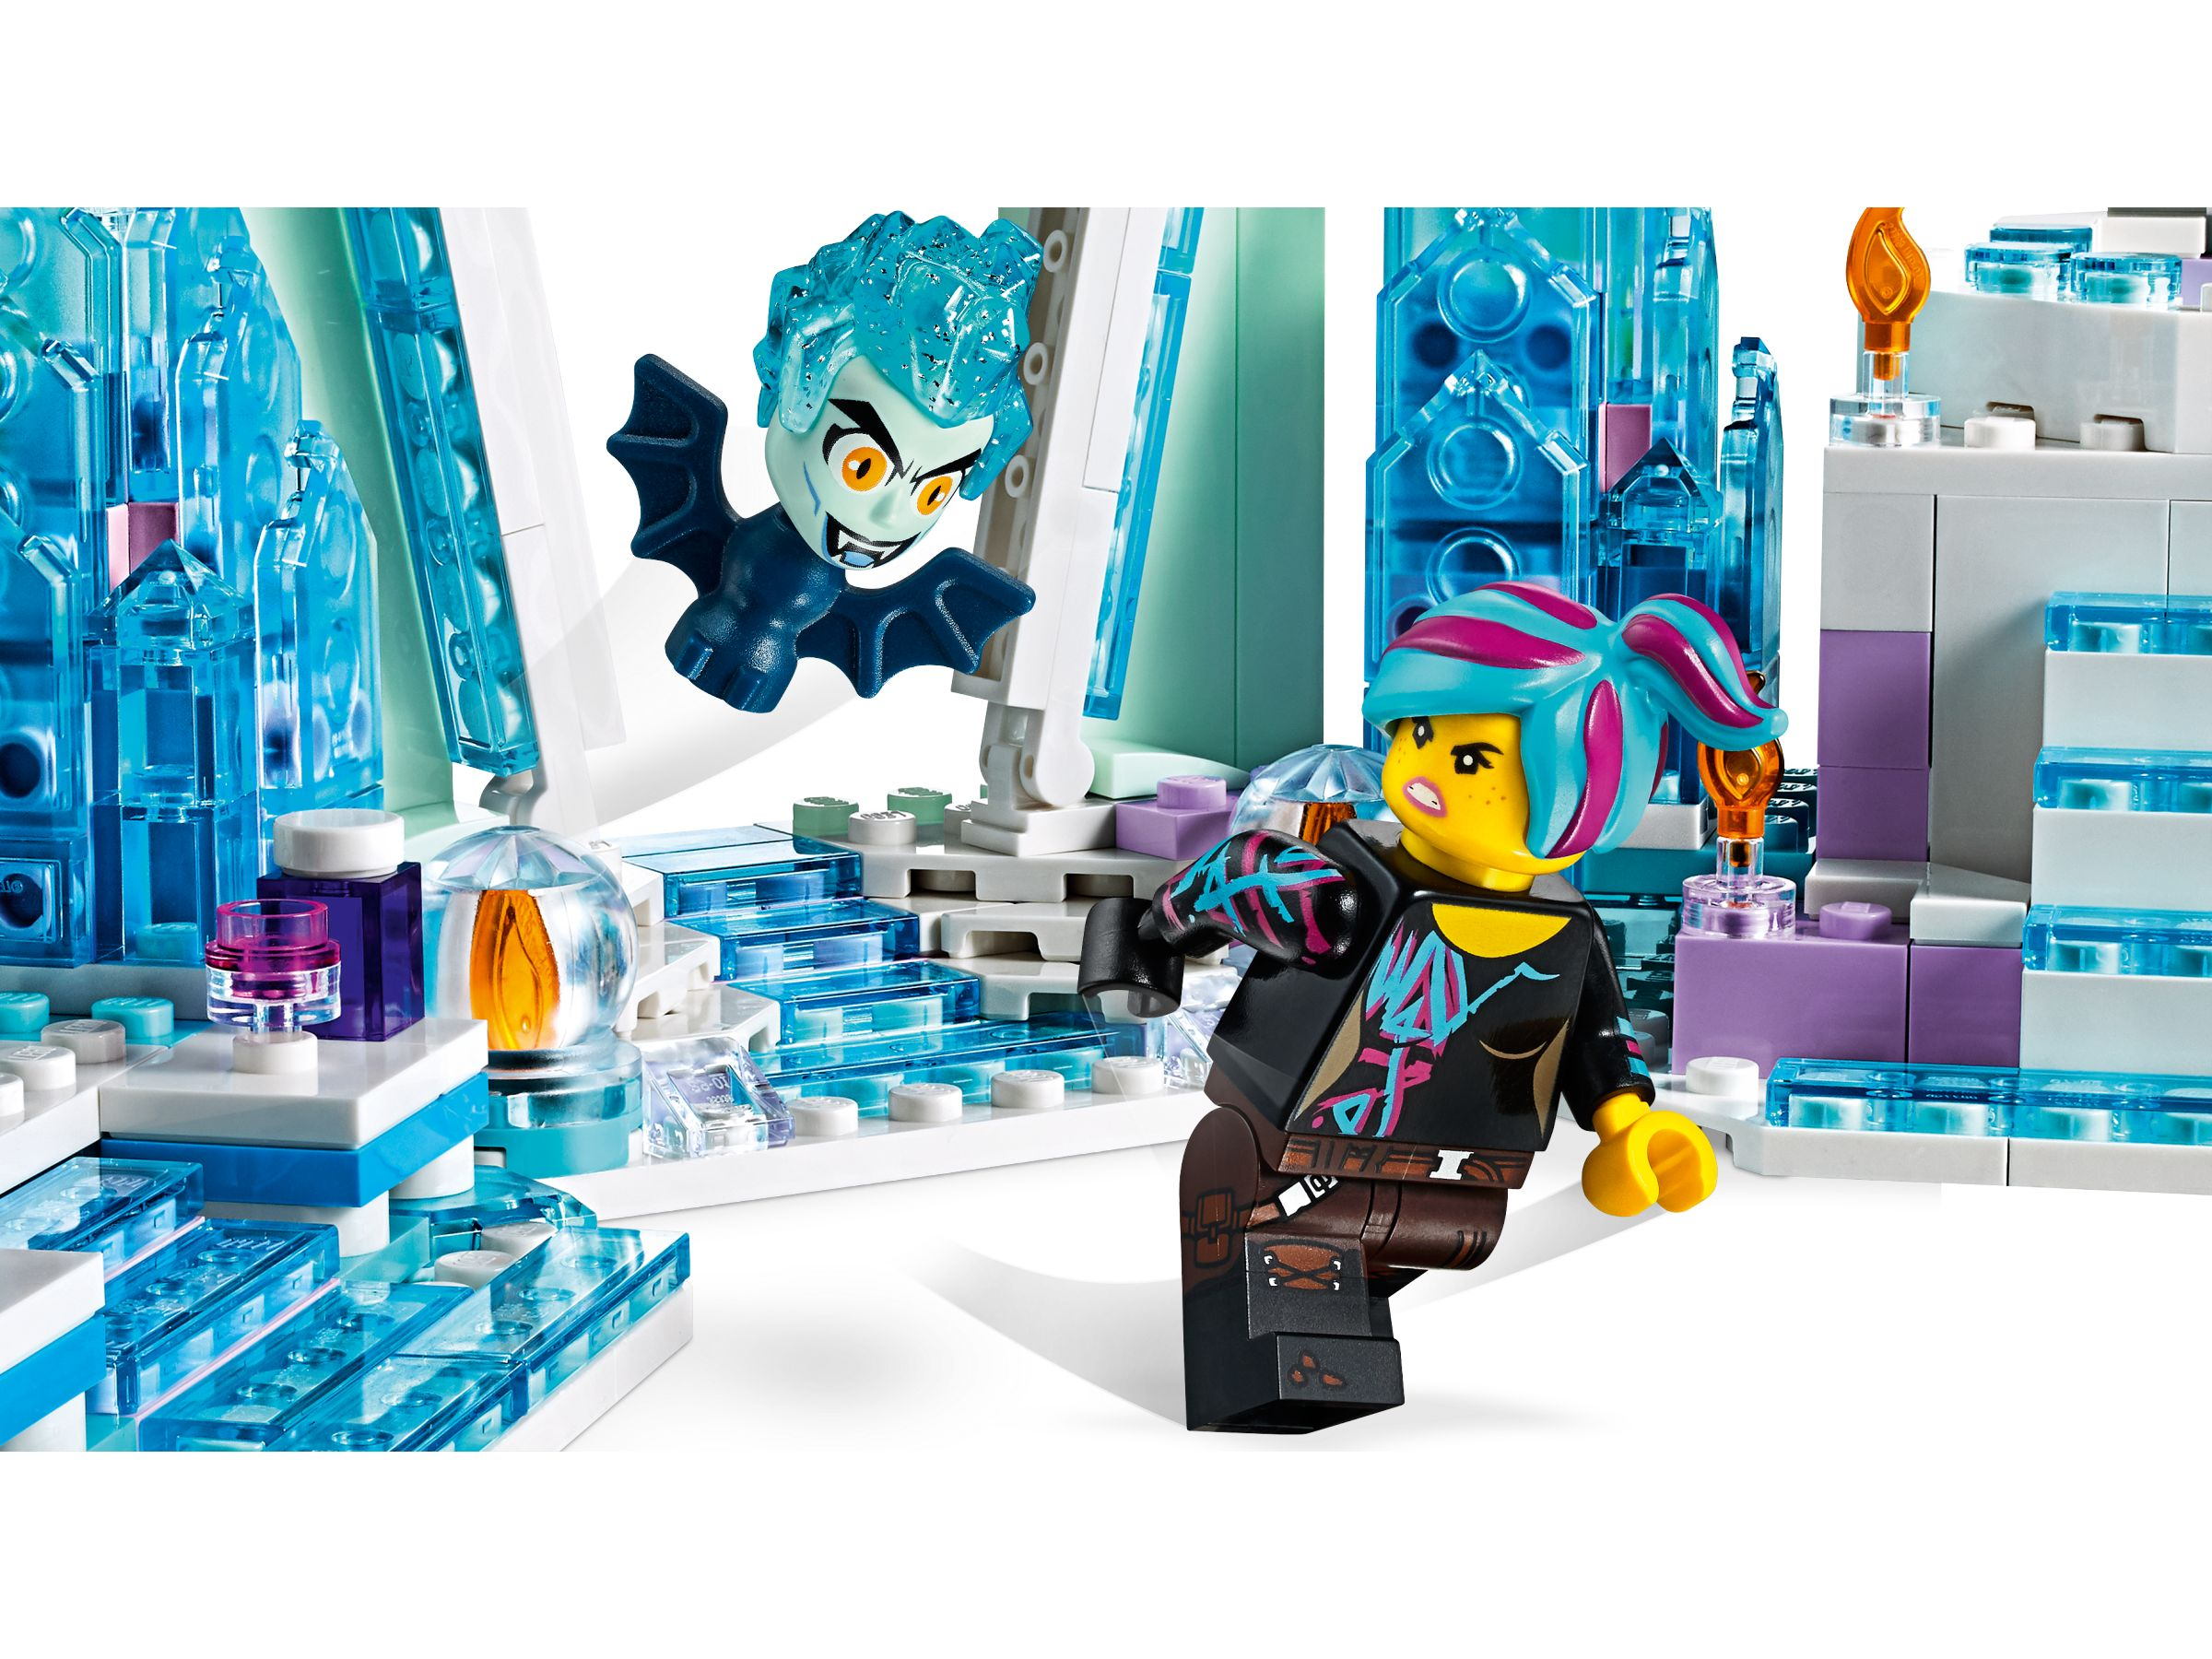 LEGO The Lego Movie 2 70837 Schimmerndes Glitzer-Spa! LEGO_70837_alt2.jpg